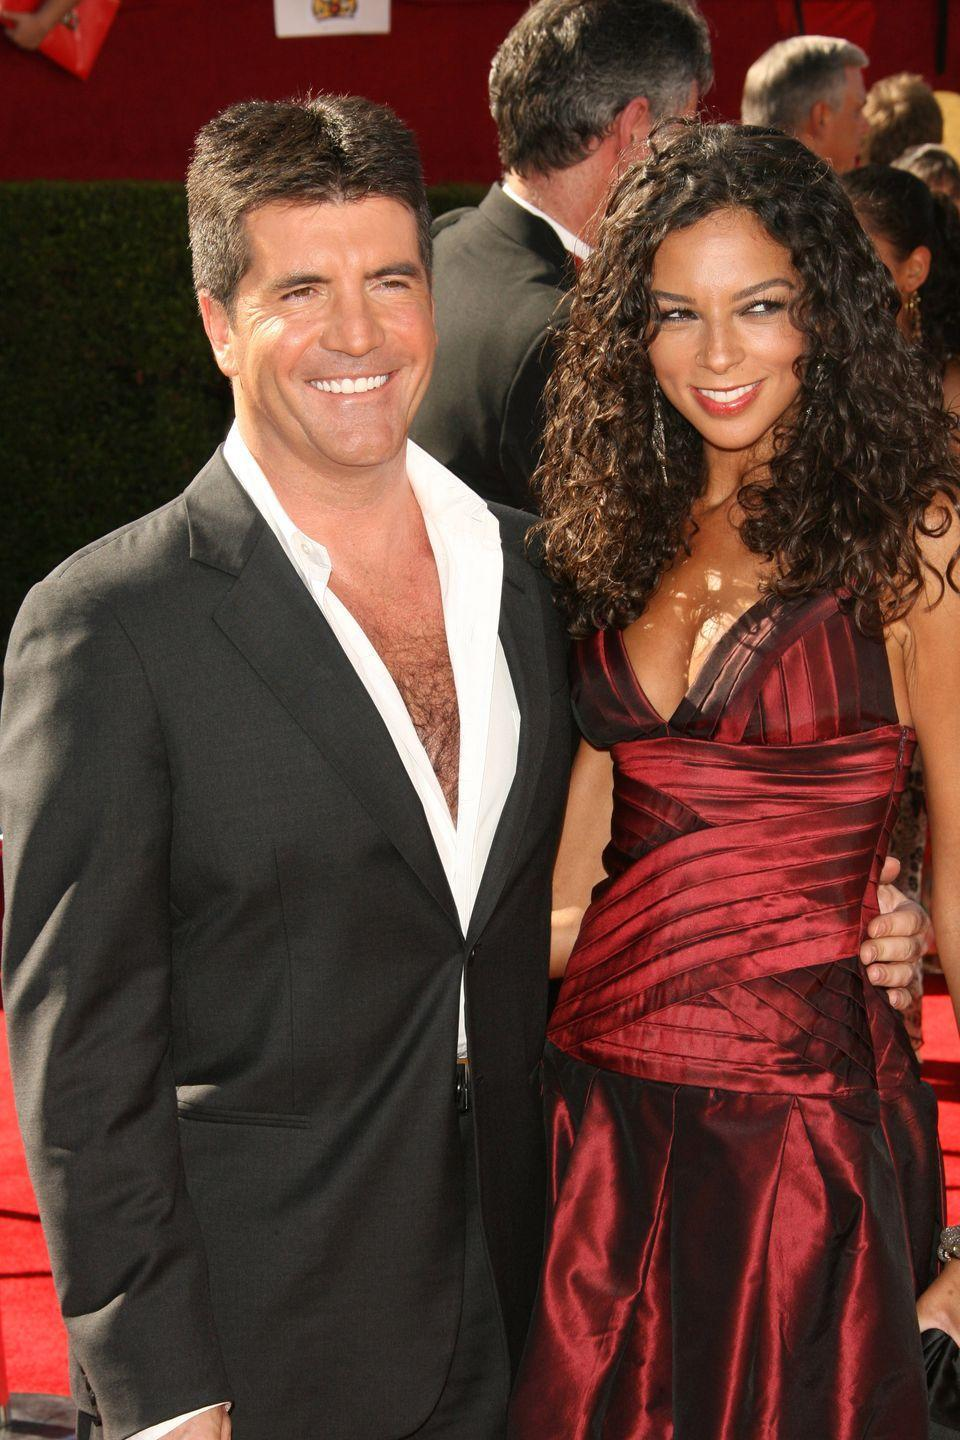 <p>Simon Cowell traded in his iconic <em>American Idol </em>deep V-neck tee for a deep V-neck button-down at the Emmys in 2006. Clearly, he has a go-to look.</p>